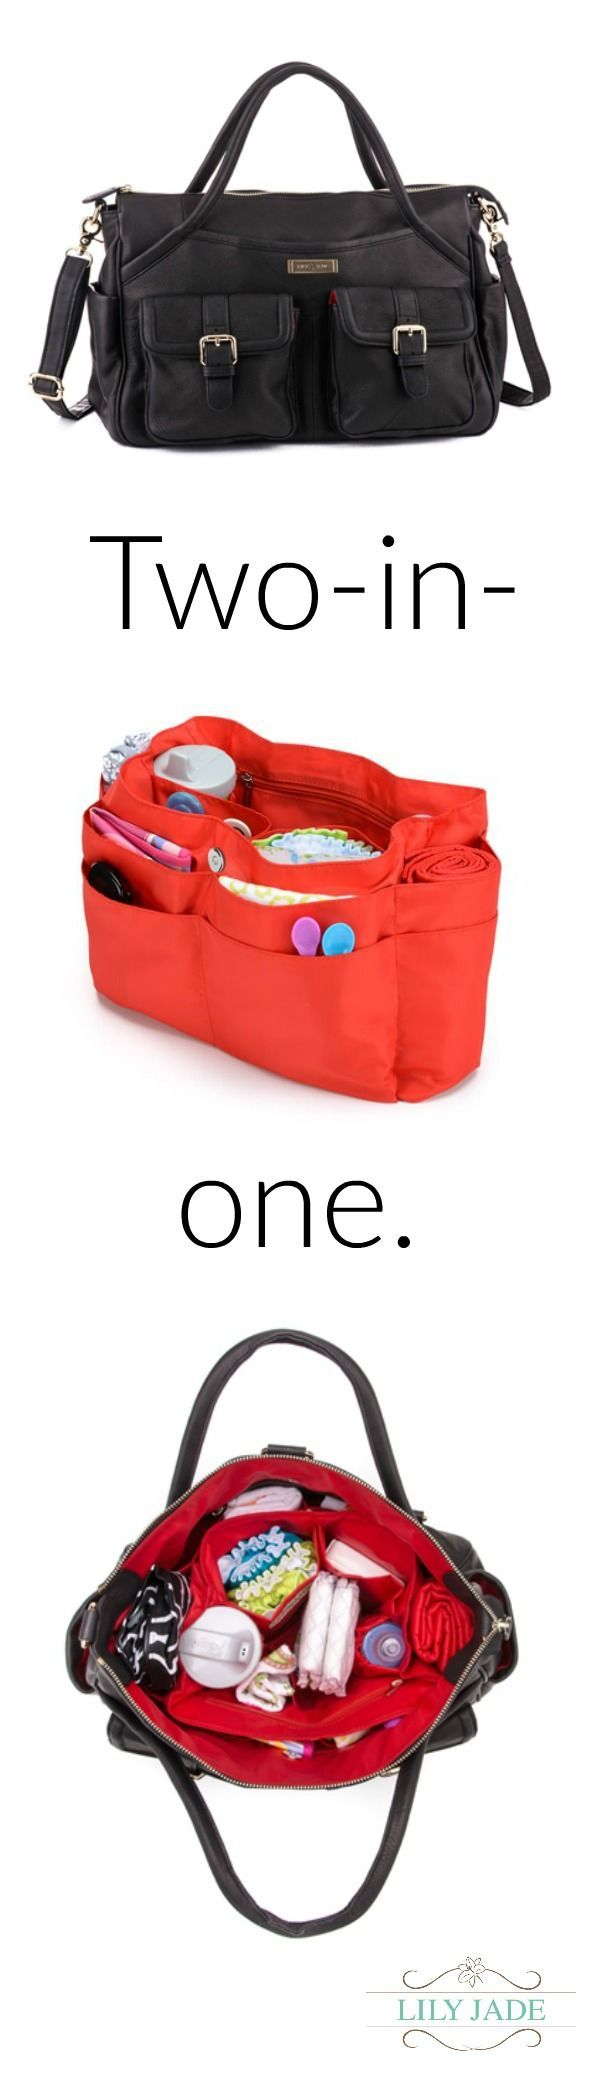 Stop digging for the pacifier. Lily Jade's luxe leather bags come with 21 pockets and a removable, washable organization insert. Go now to http://www.lily-jade.com to learn more.